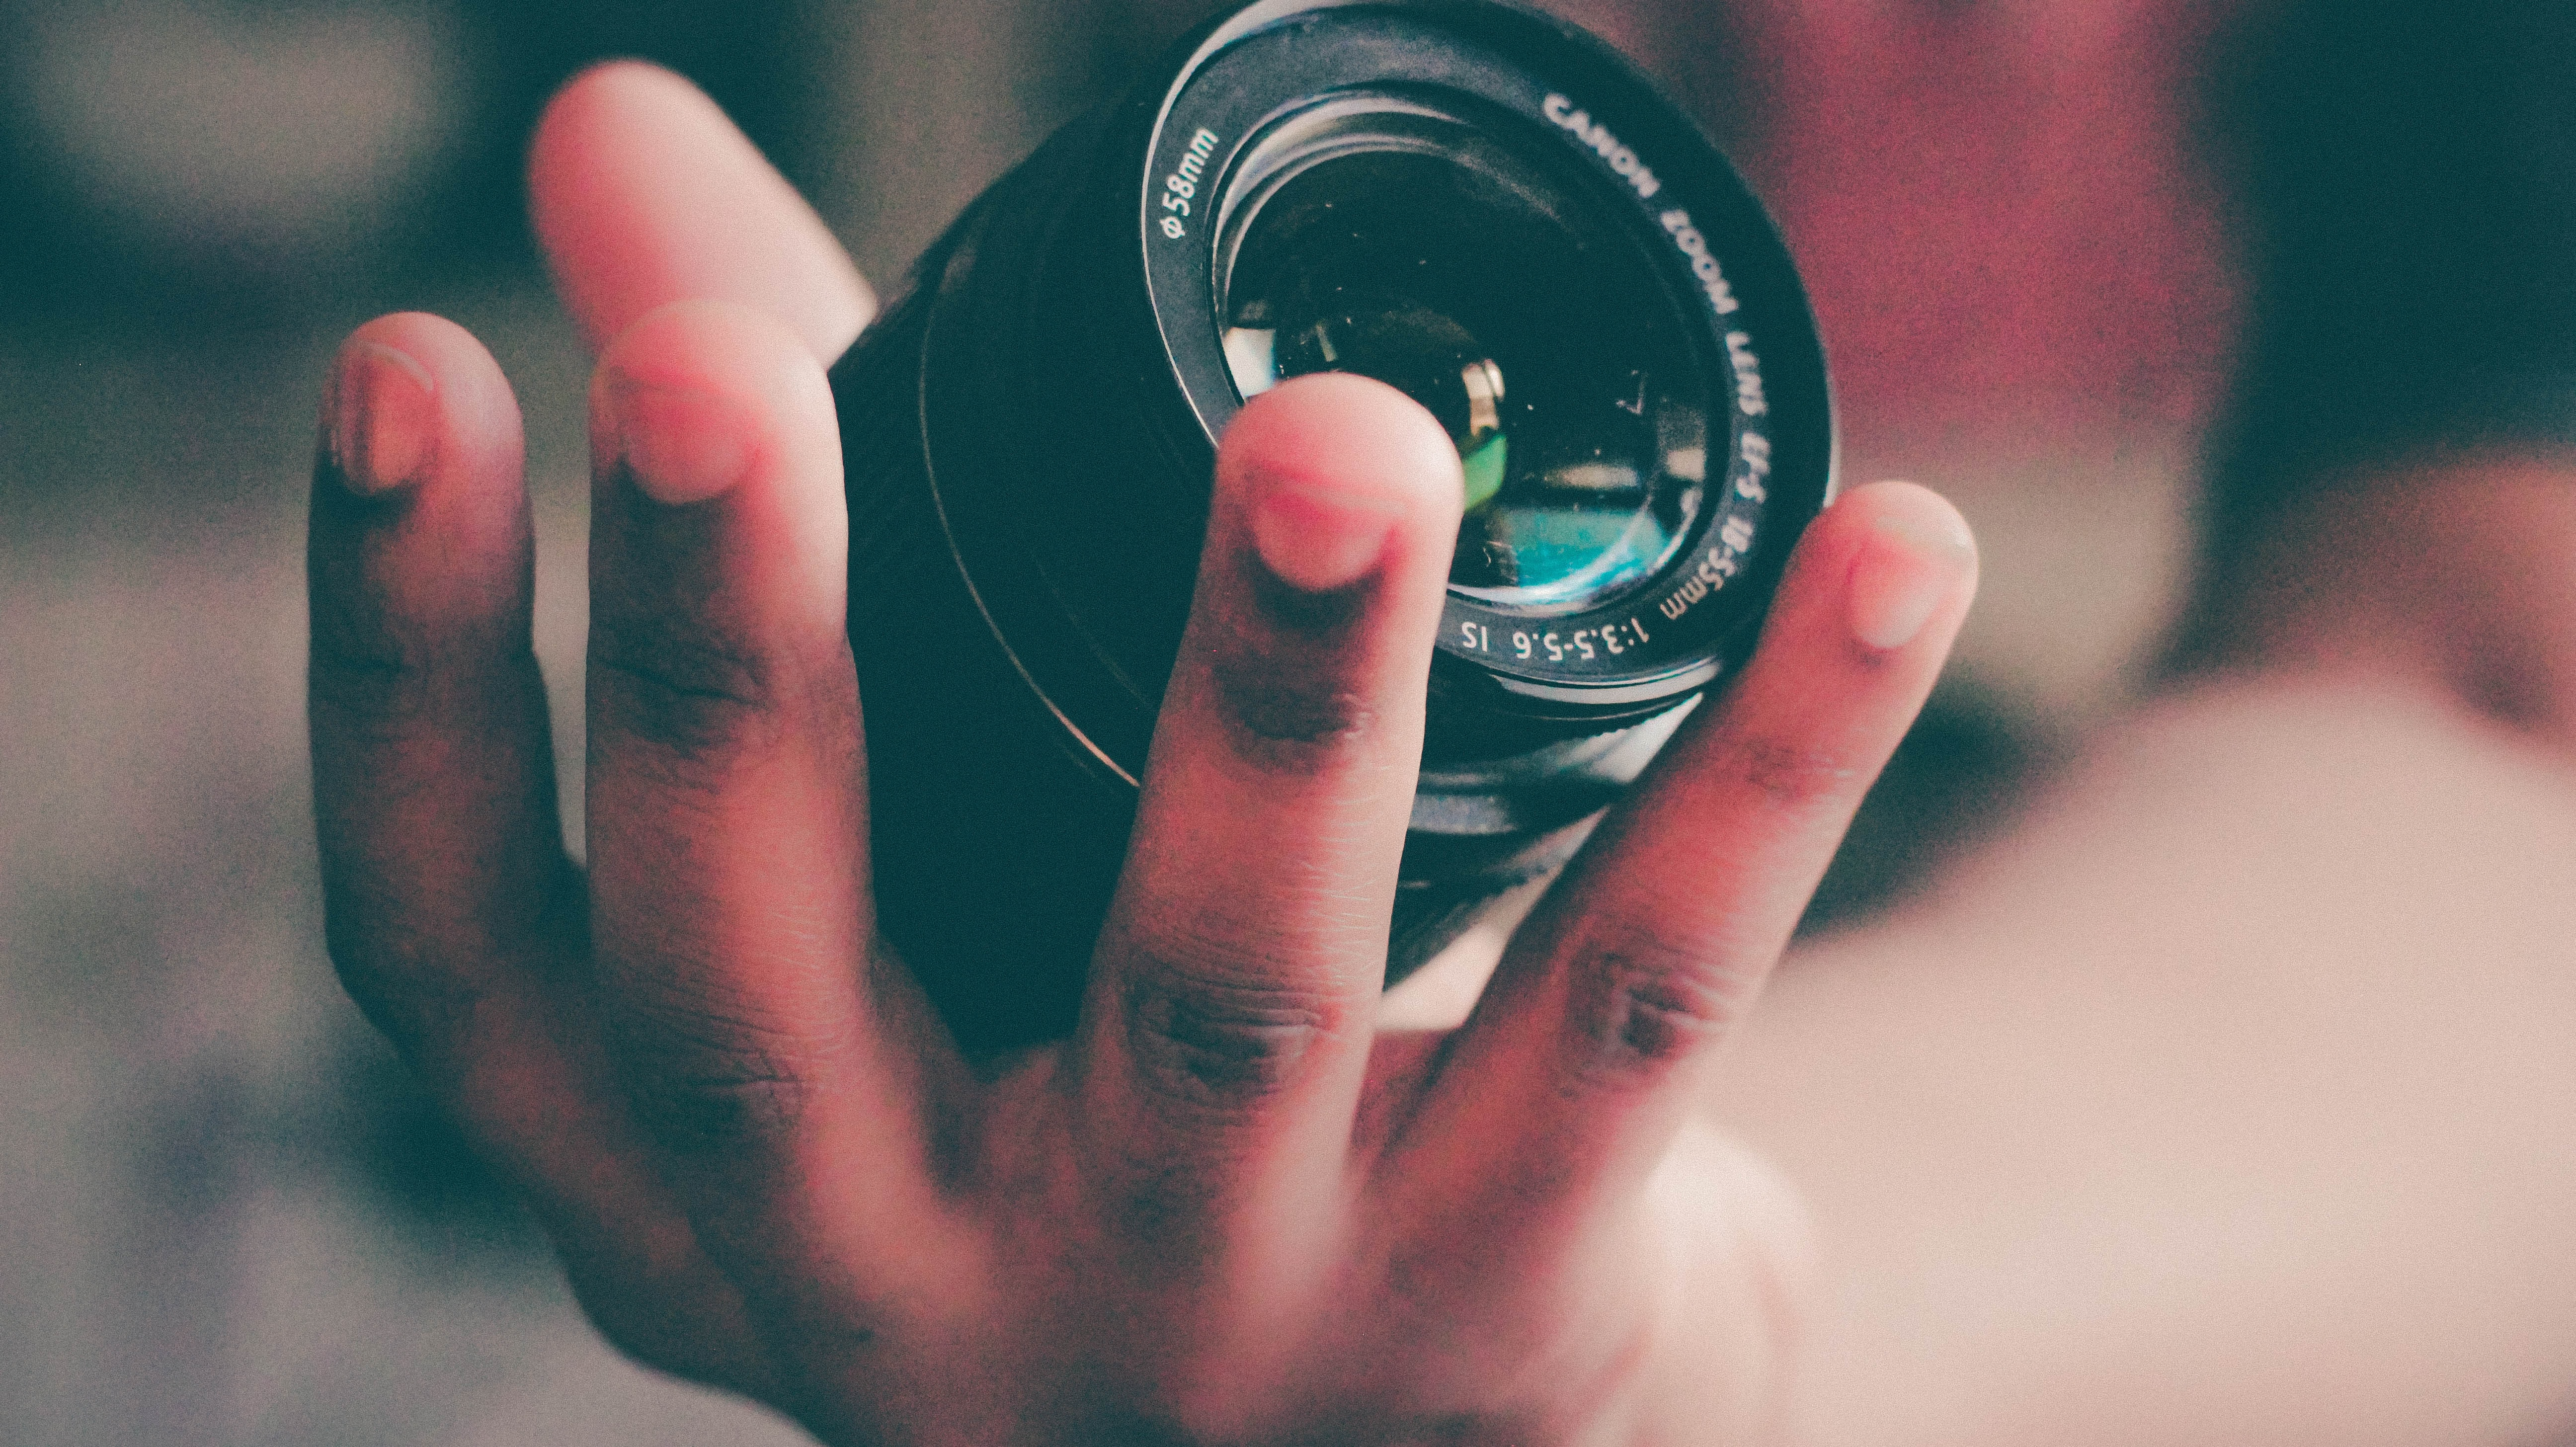 shallow focus photography of person holding black DLSR camera lens